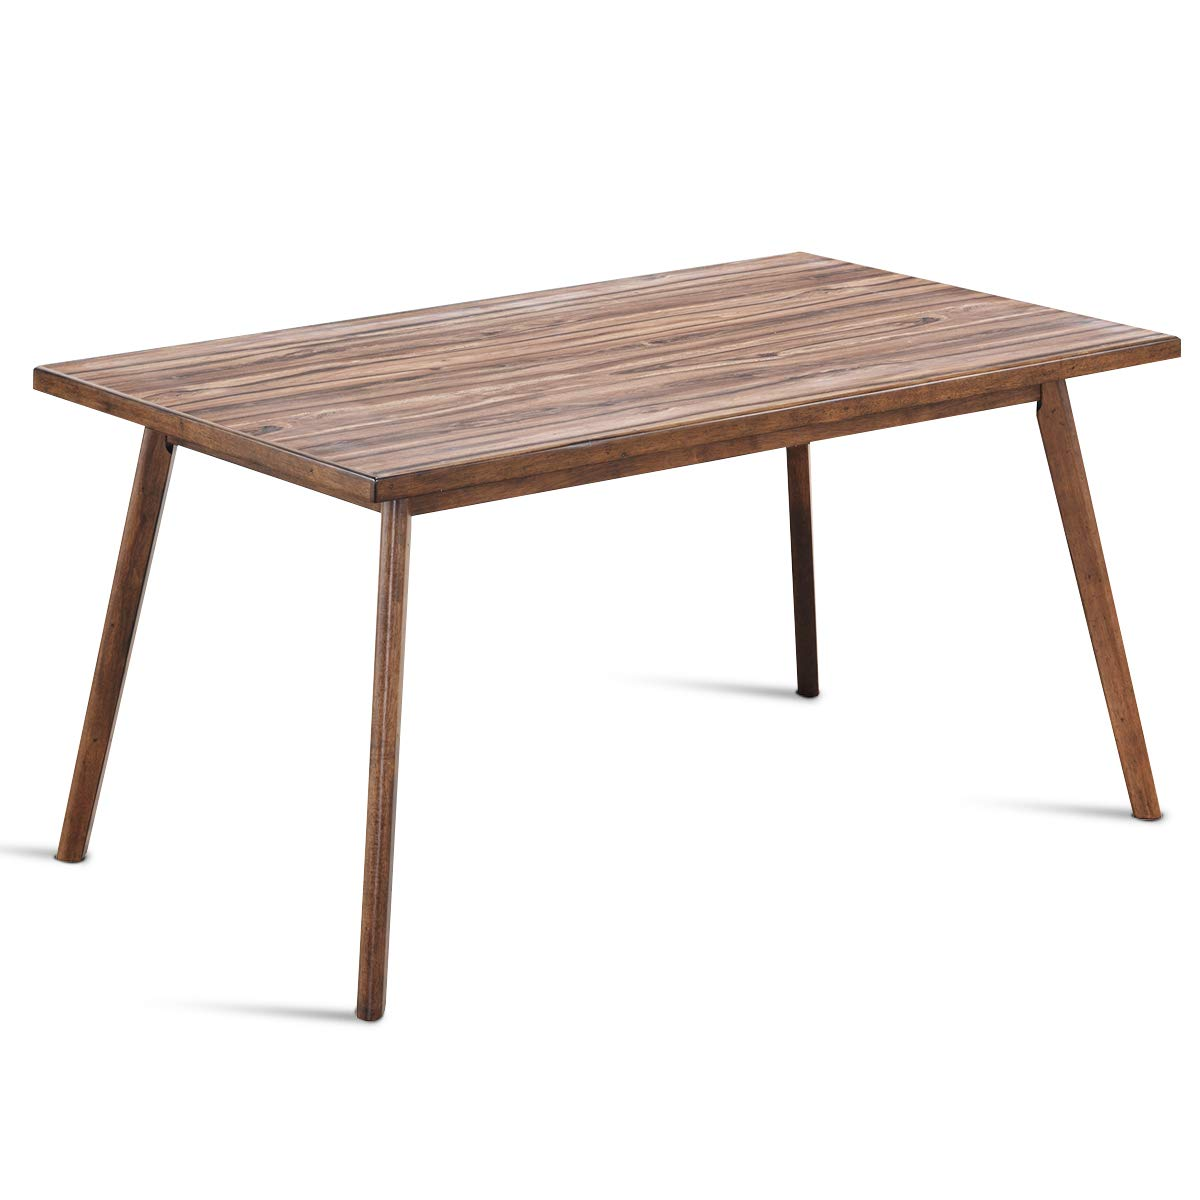 Giantex Dining Table Mid Century Kitchen Table Rectangular Console Table with Wood Legs by Giantex